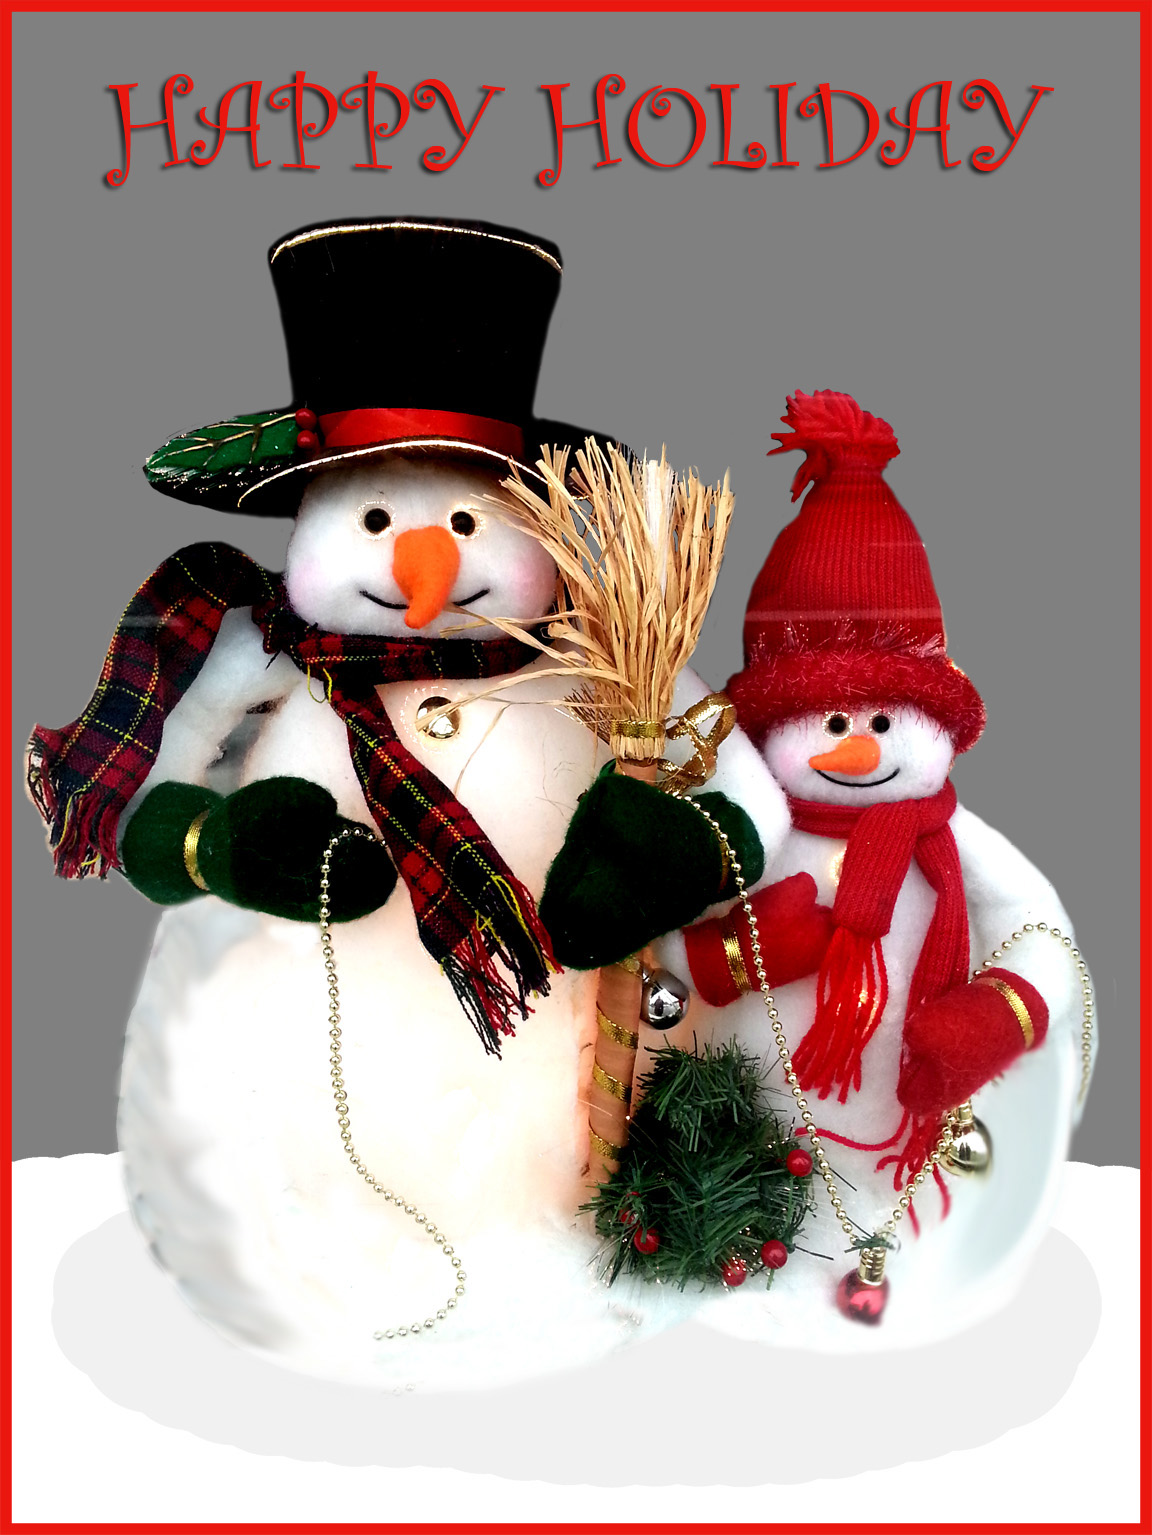 Two snowmen Christmas card greeting